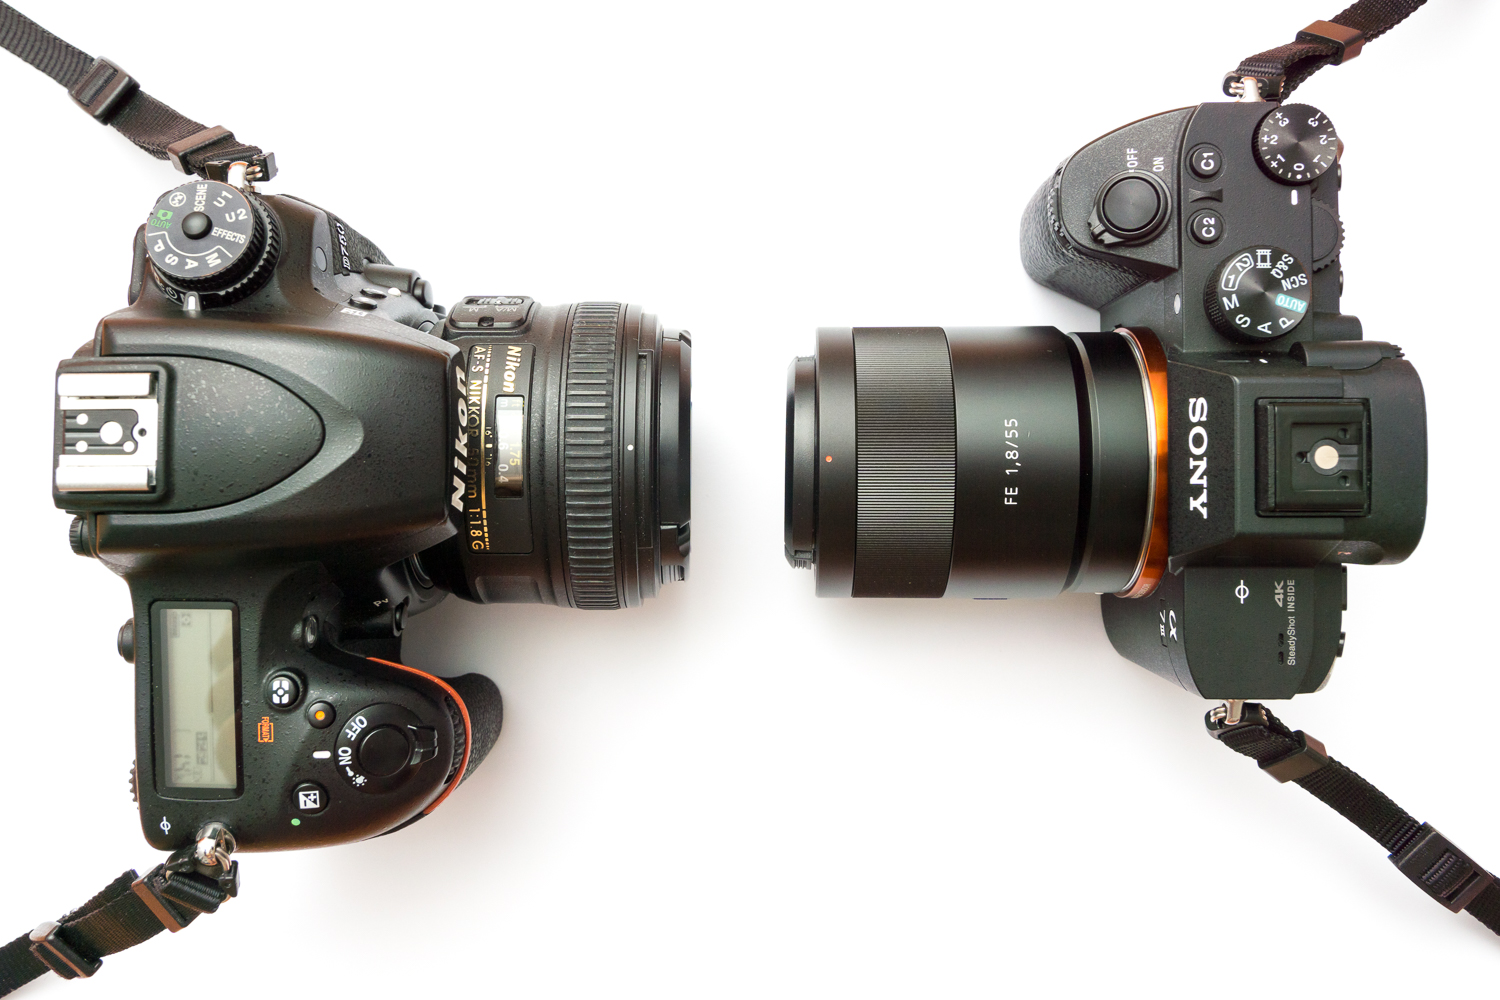 From Nikon D750 to Sony A7III?